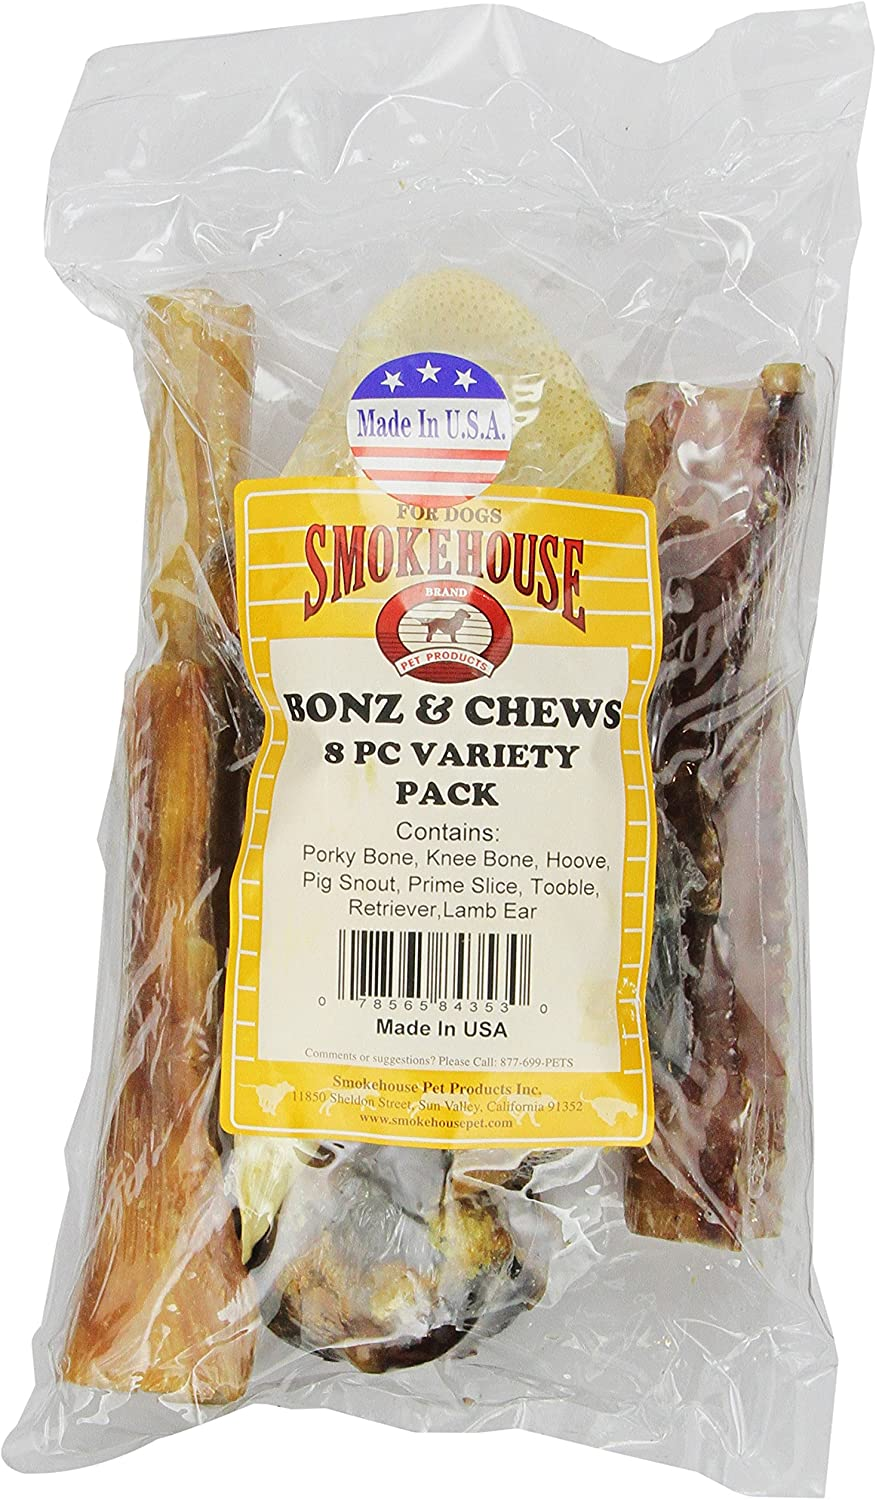 Smokehouse Excellence Year-end annual account 100-Percent Natural Bonz And Dog 8-Coun Chewz Treats